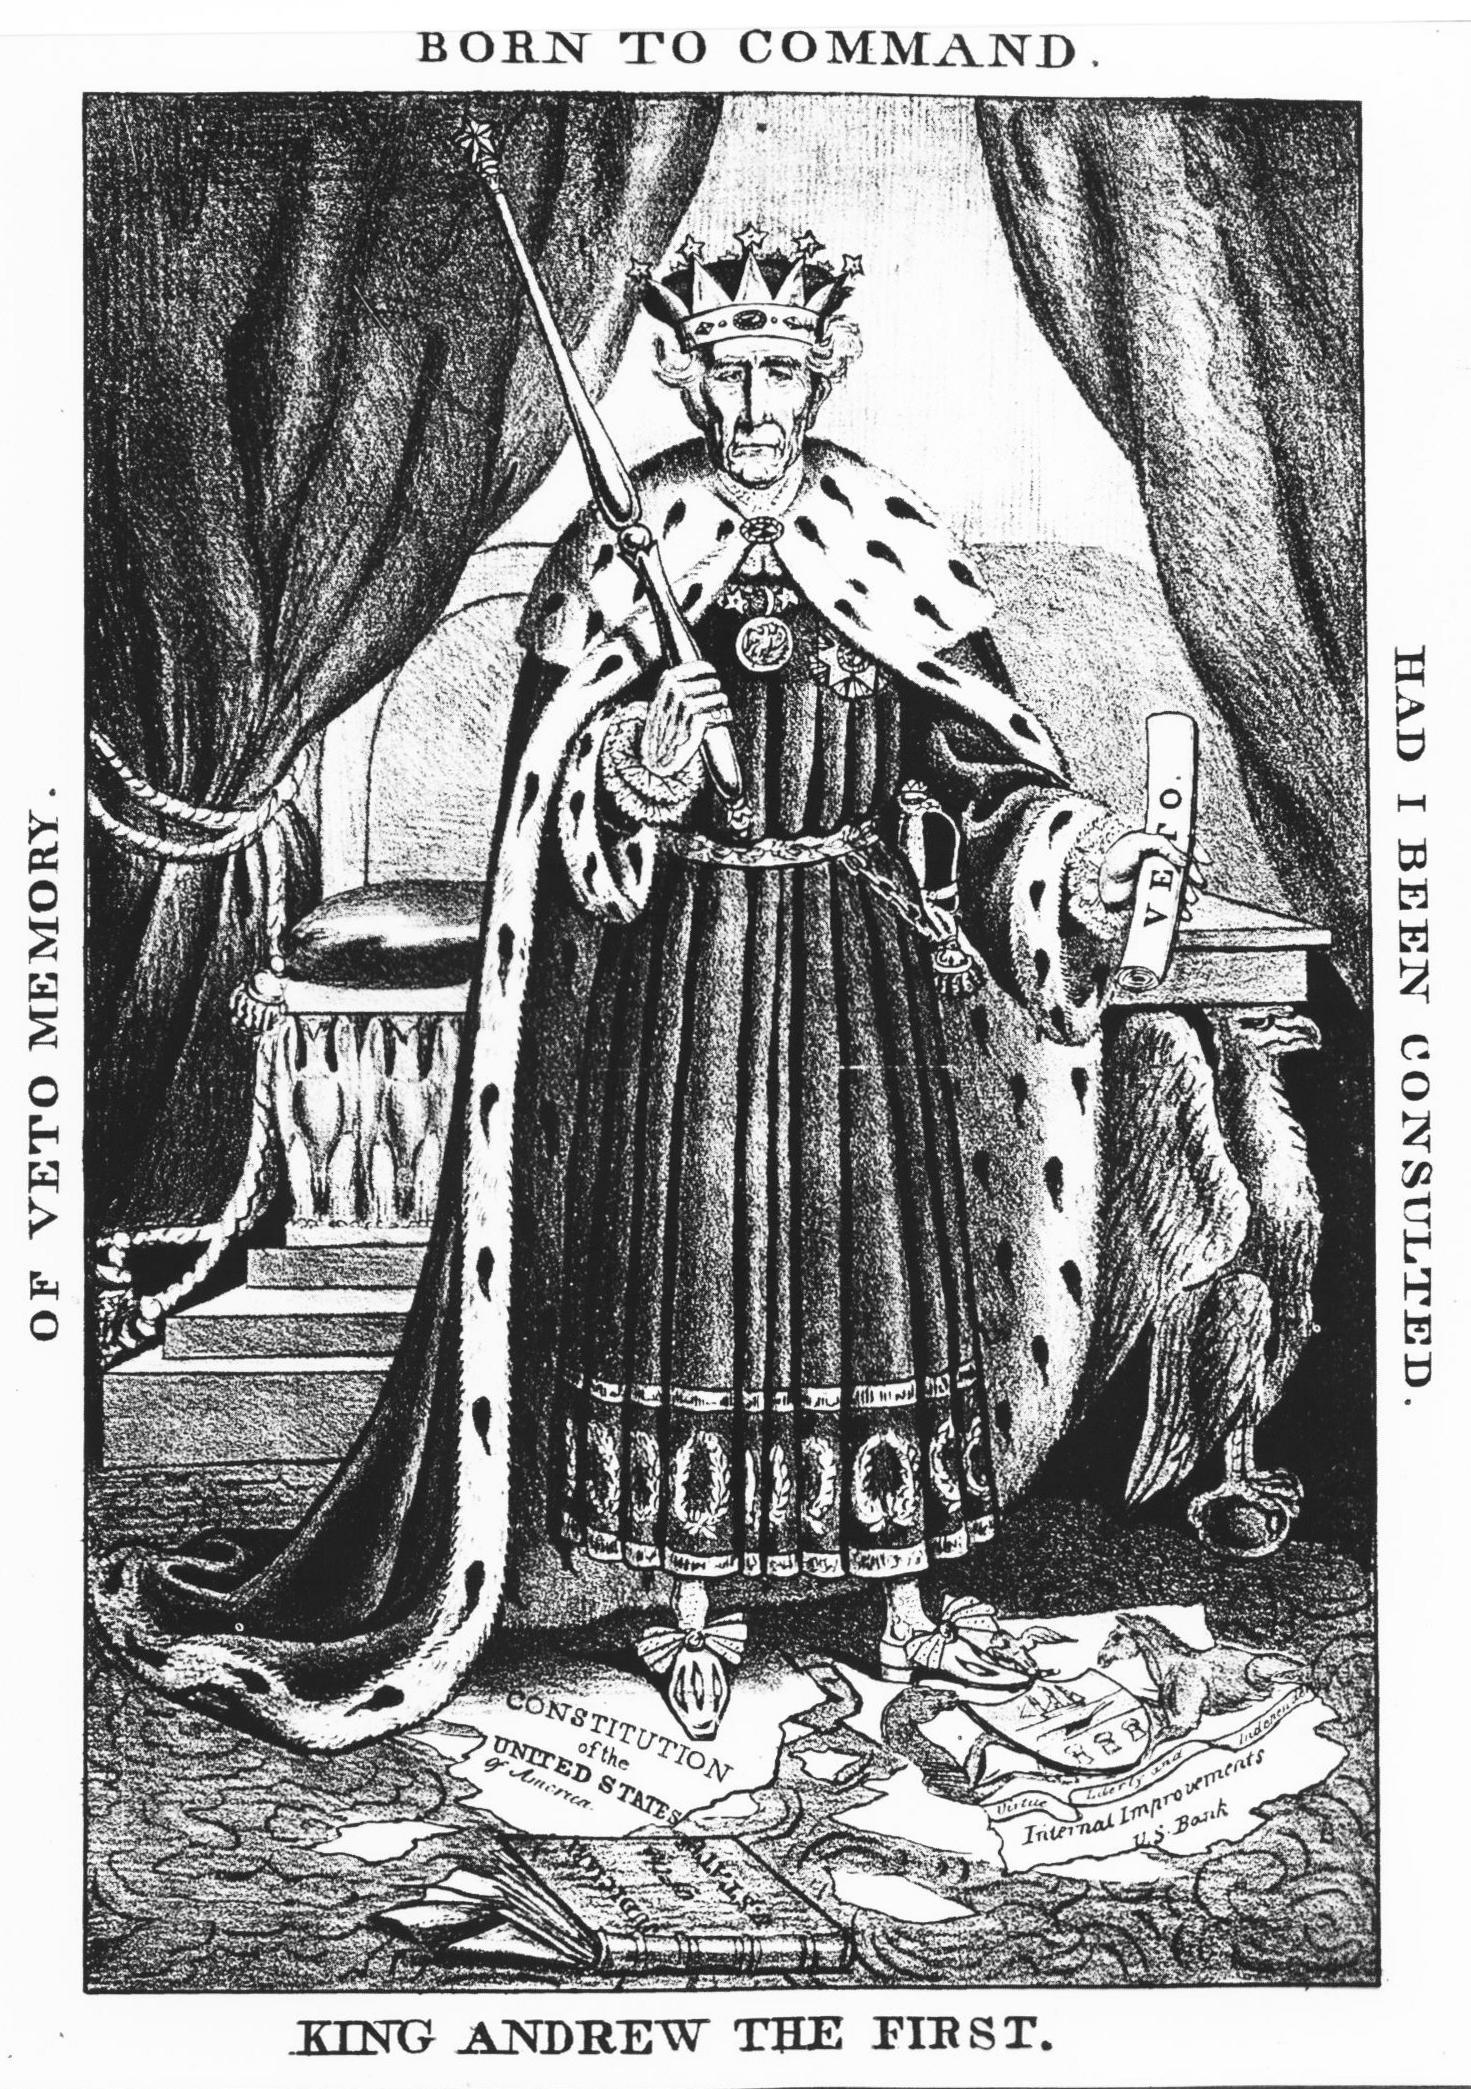 King_Andrew_the_First_(political_cartoon_of_President_Andrew_Jackson).jpg